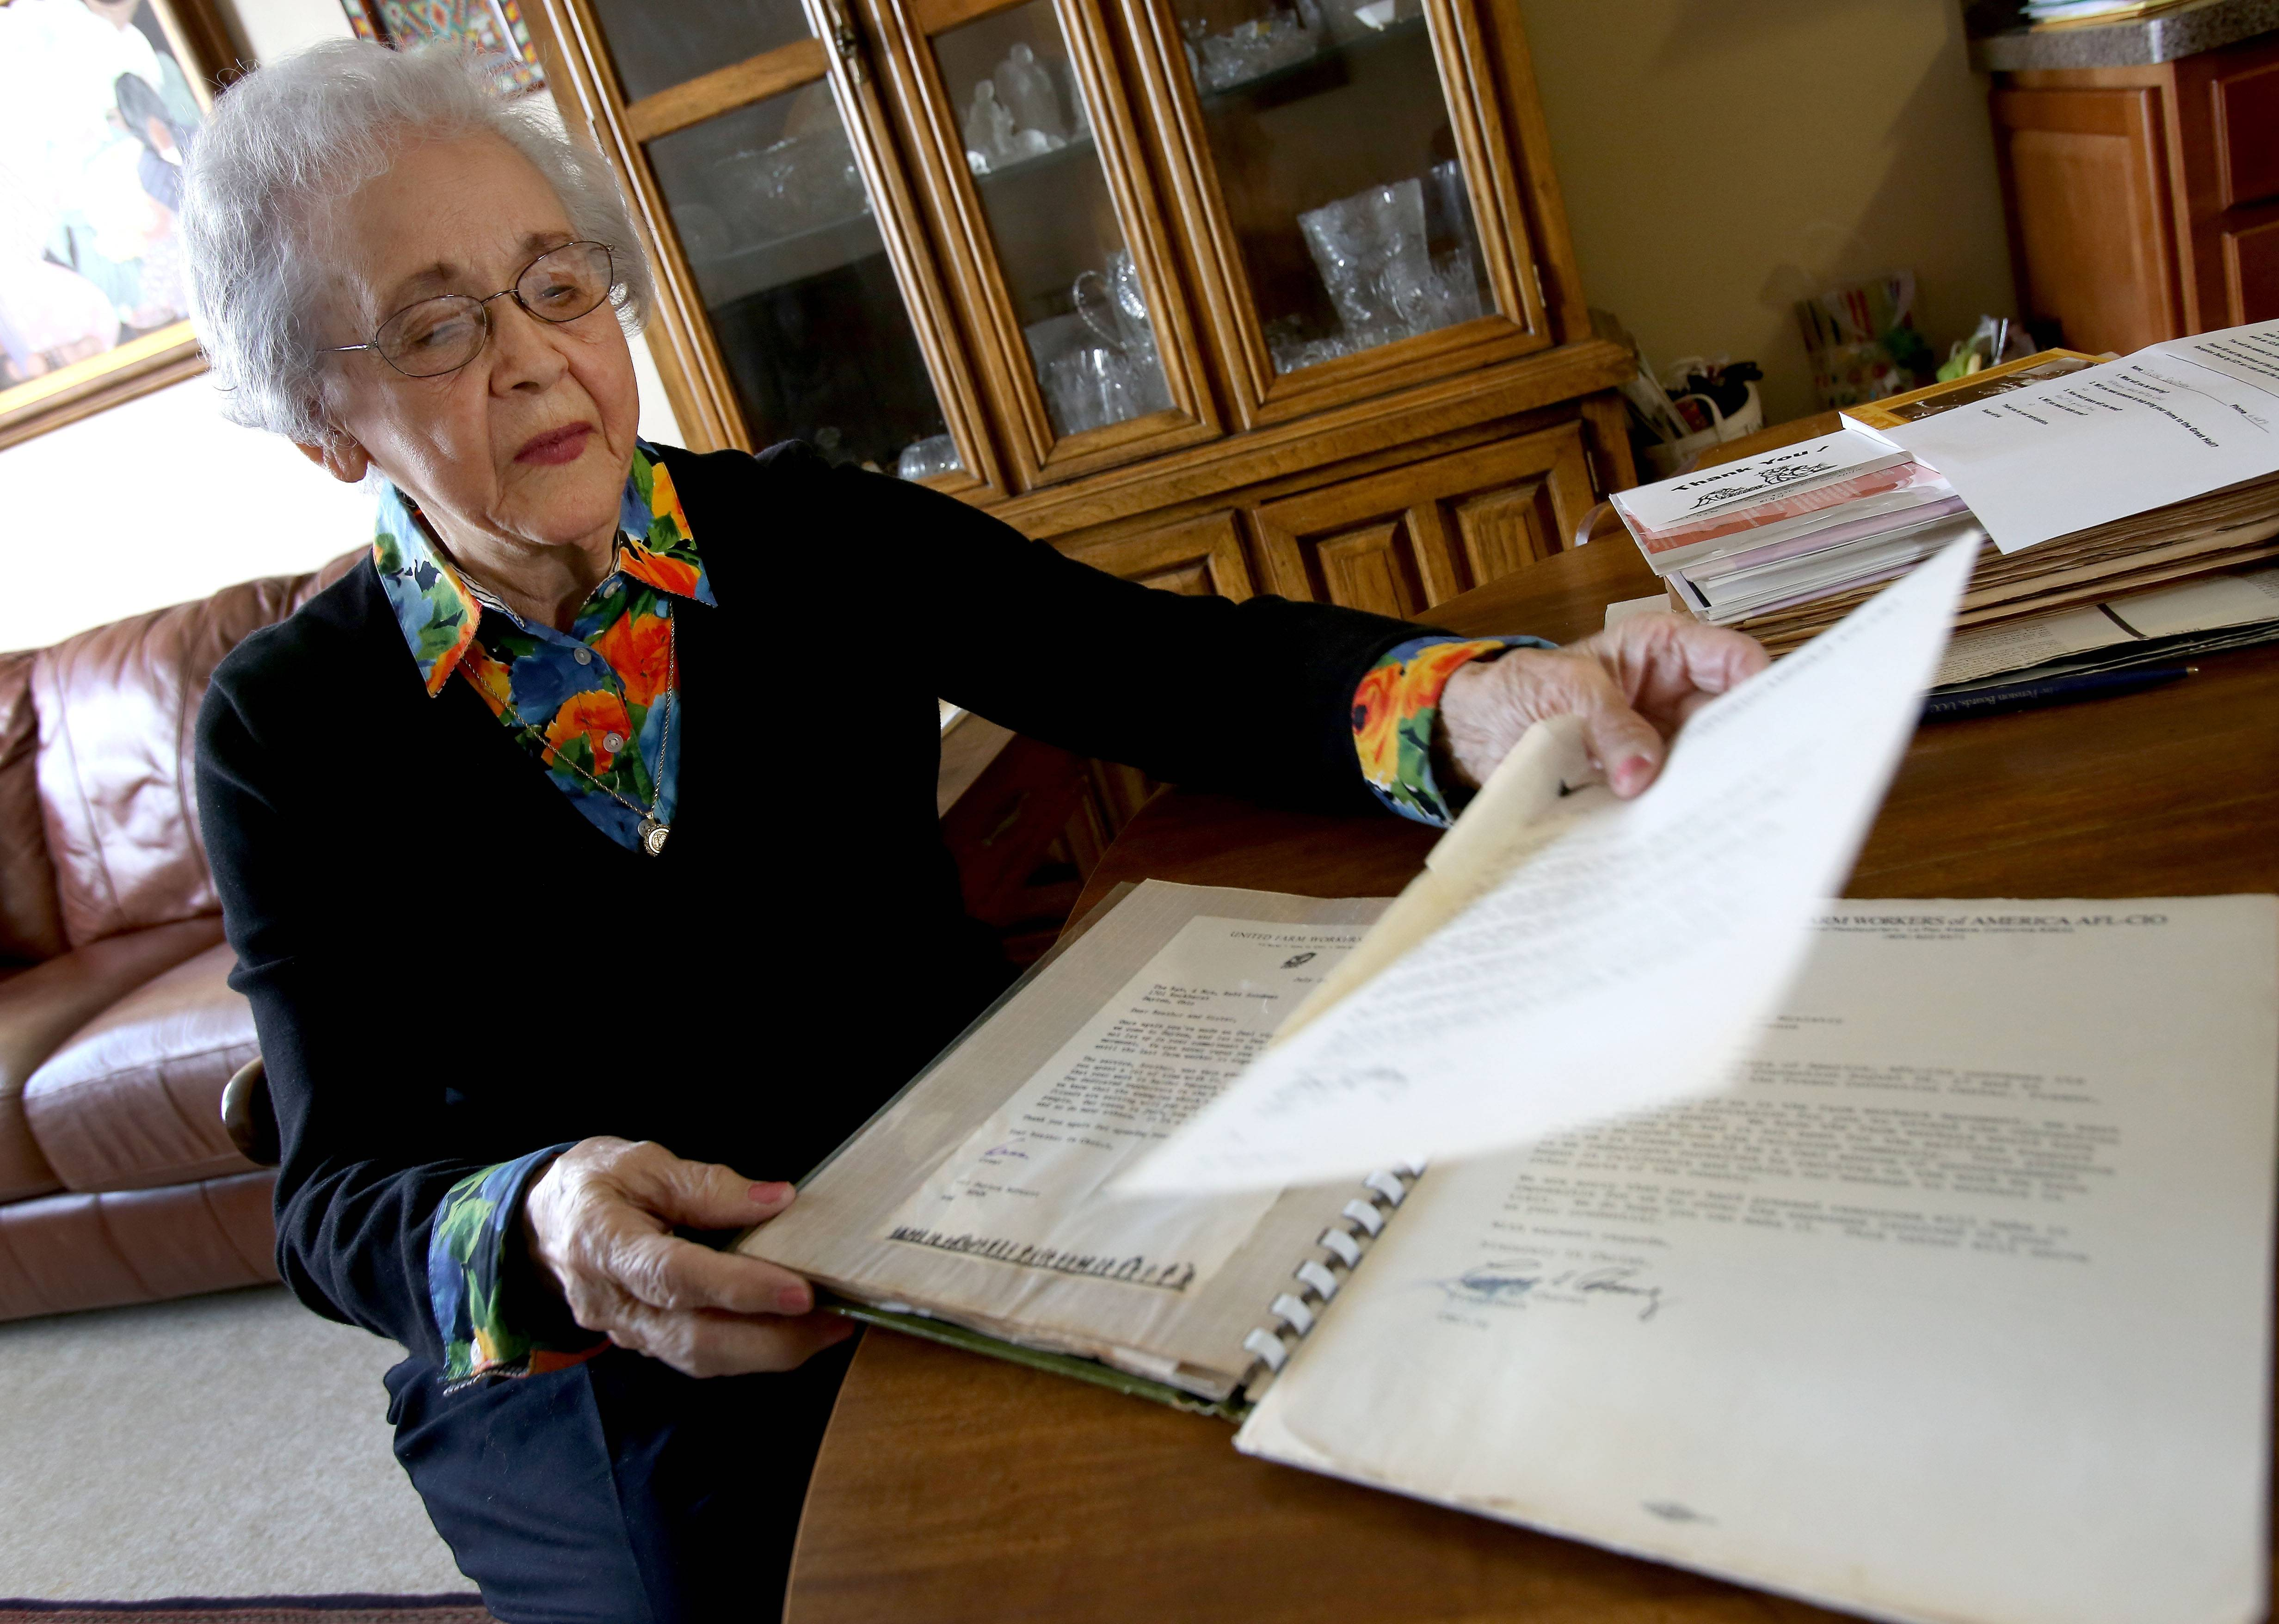 Olgha Sandman looks through letters written to her by migrant worker advocate Cesar Chavez.